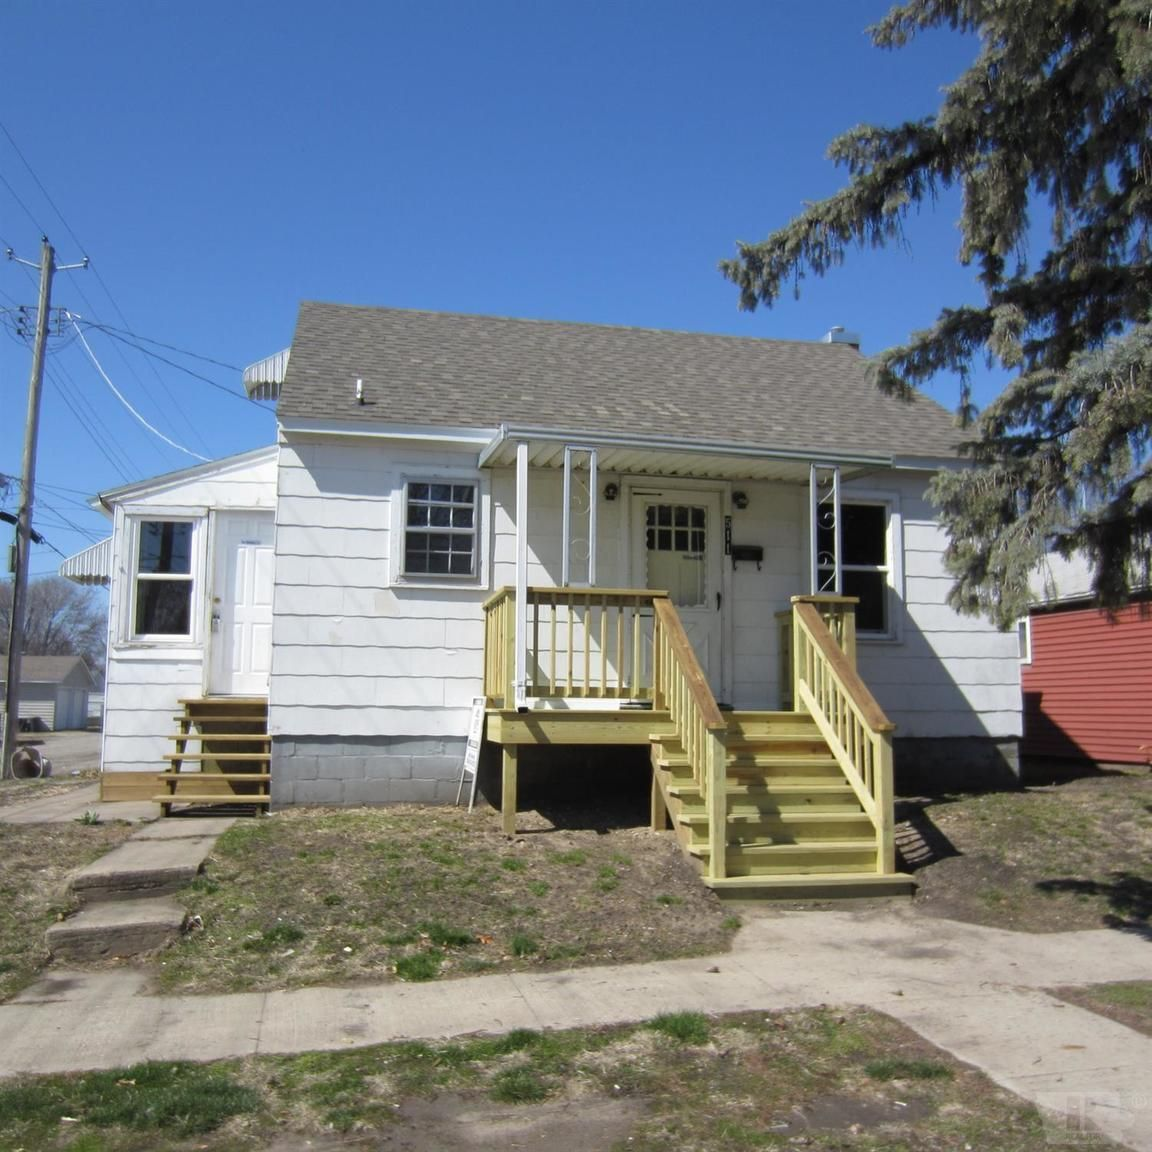 511 12TH STREET Fort Madison IA 52627 id-32432 homes for sale